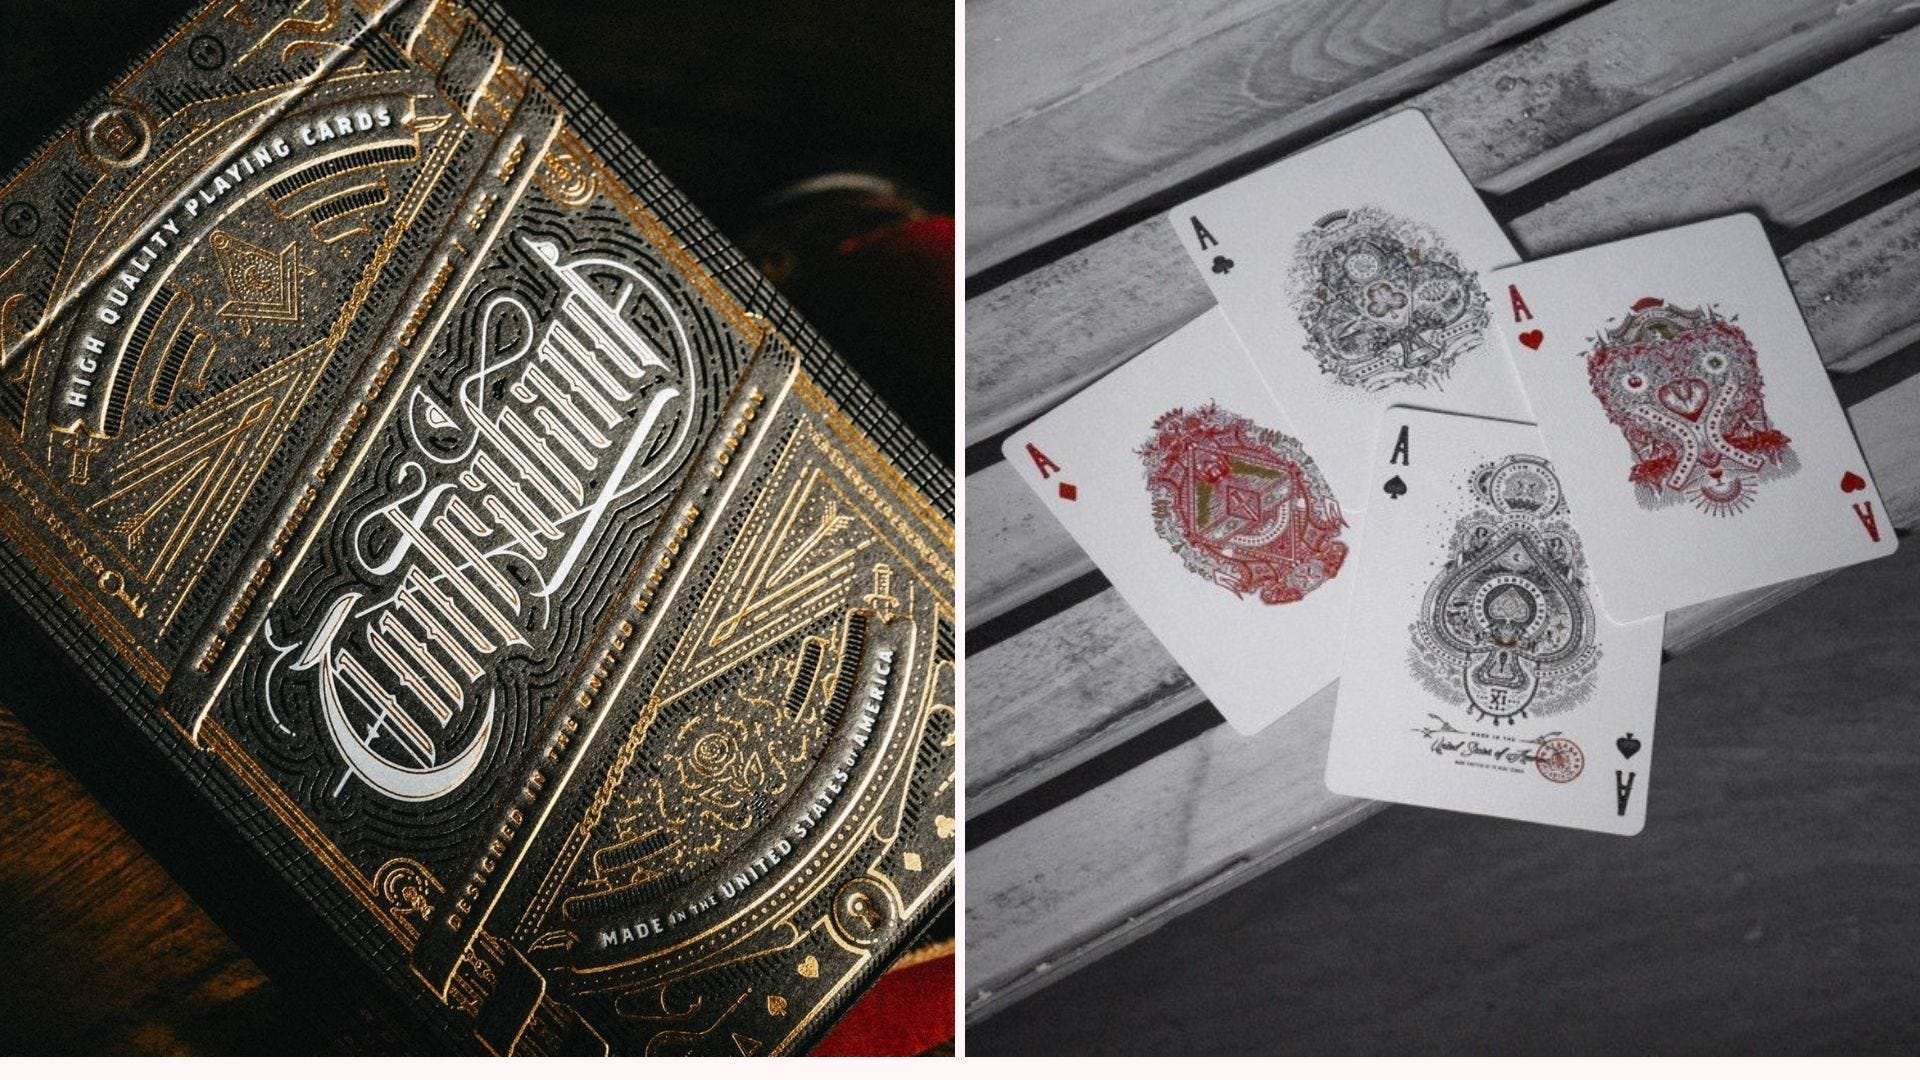 Theory11's Contraband playing cards box and cards.